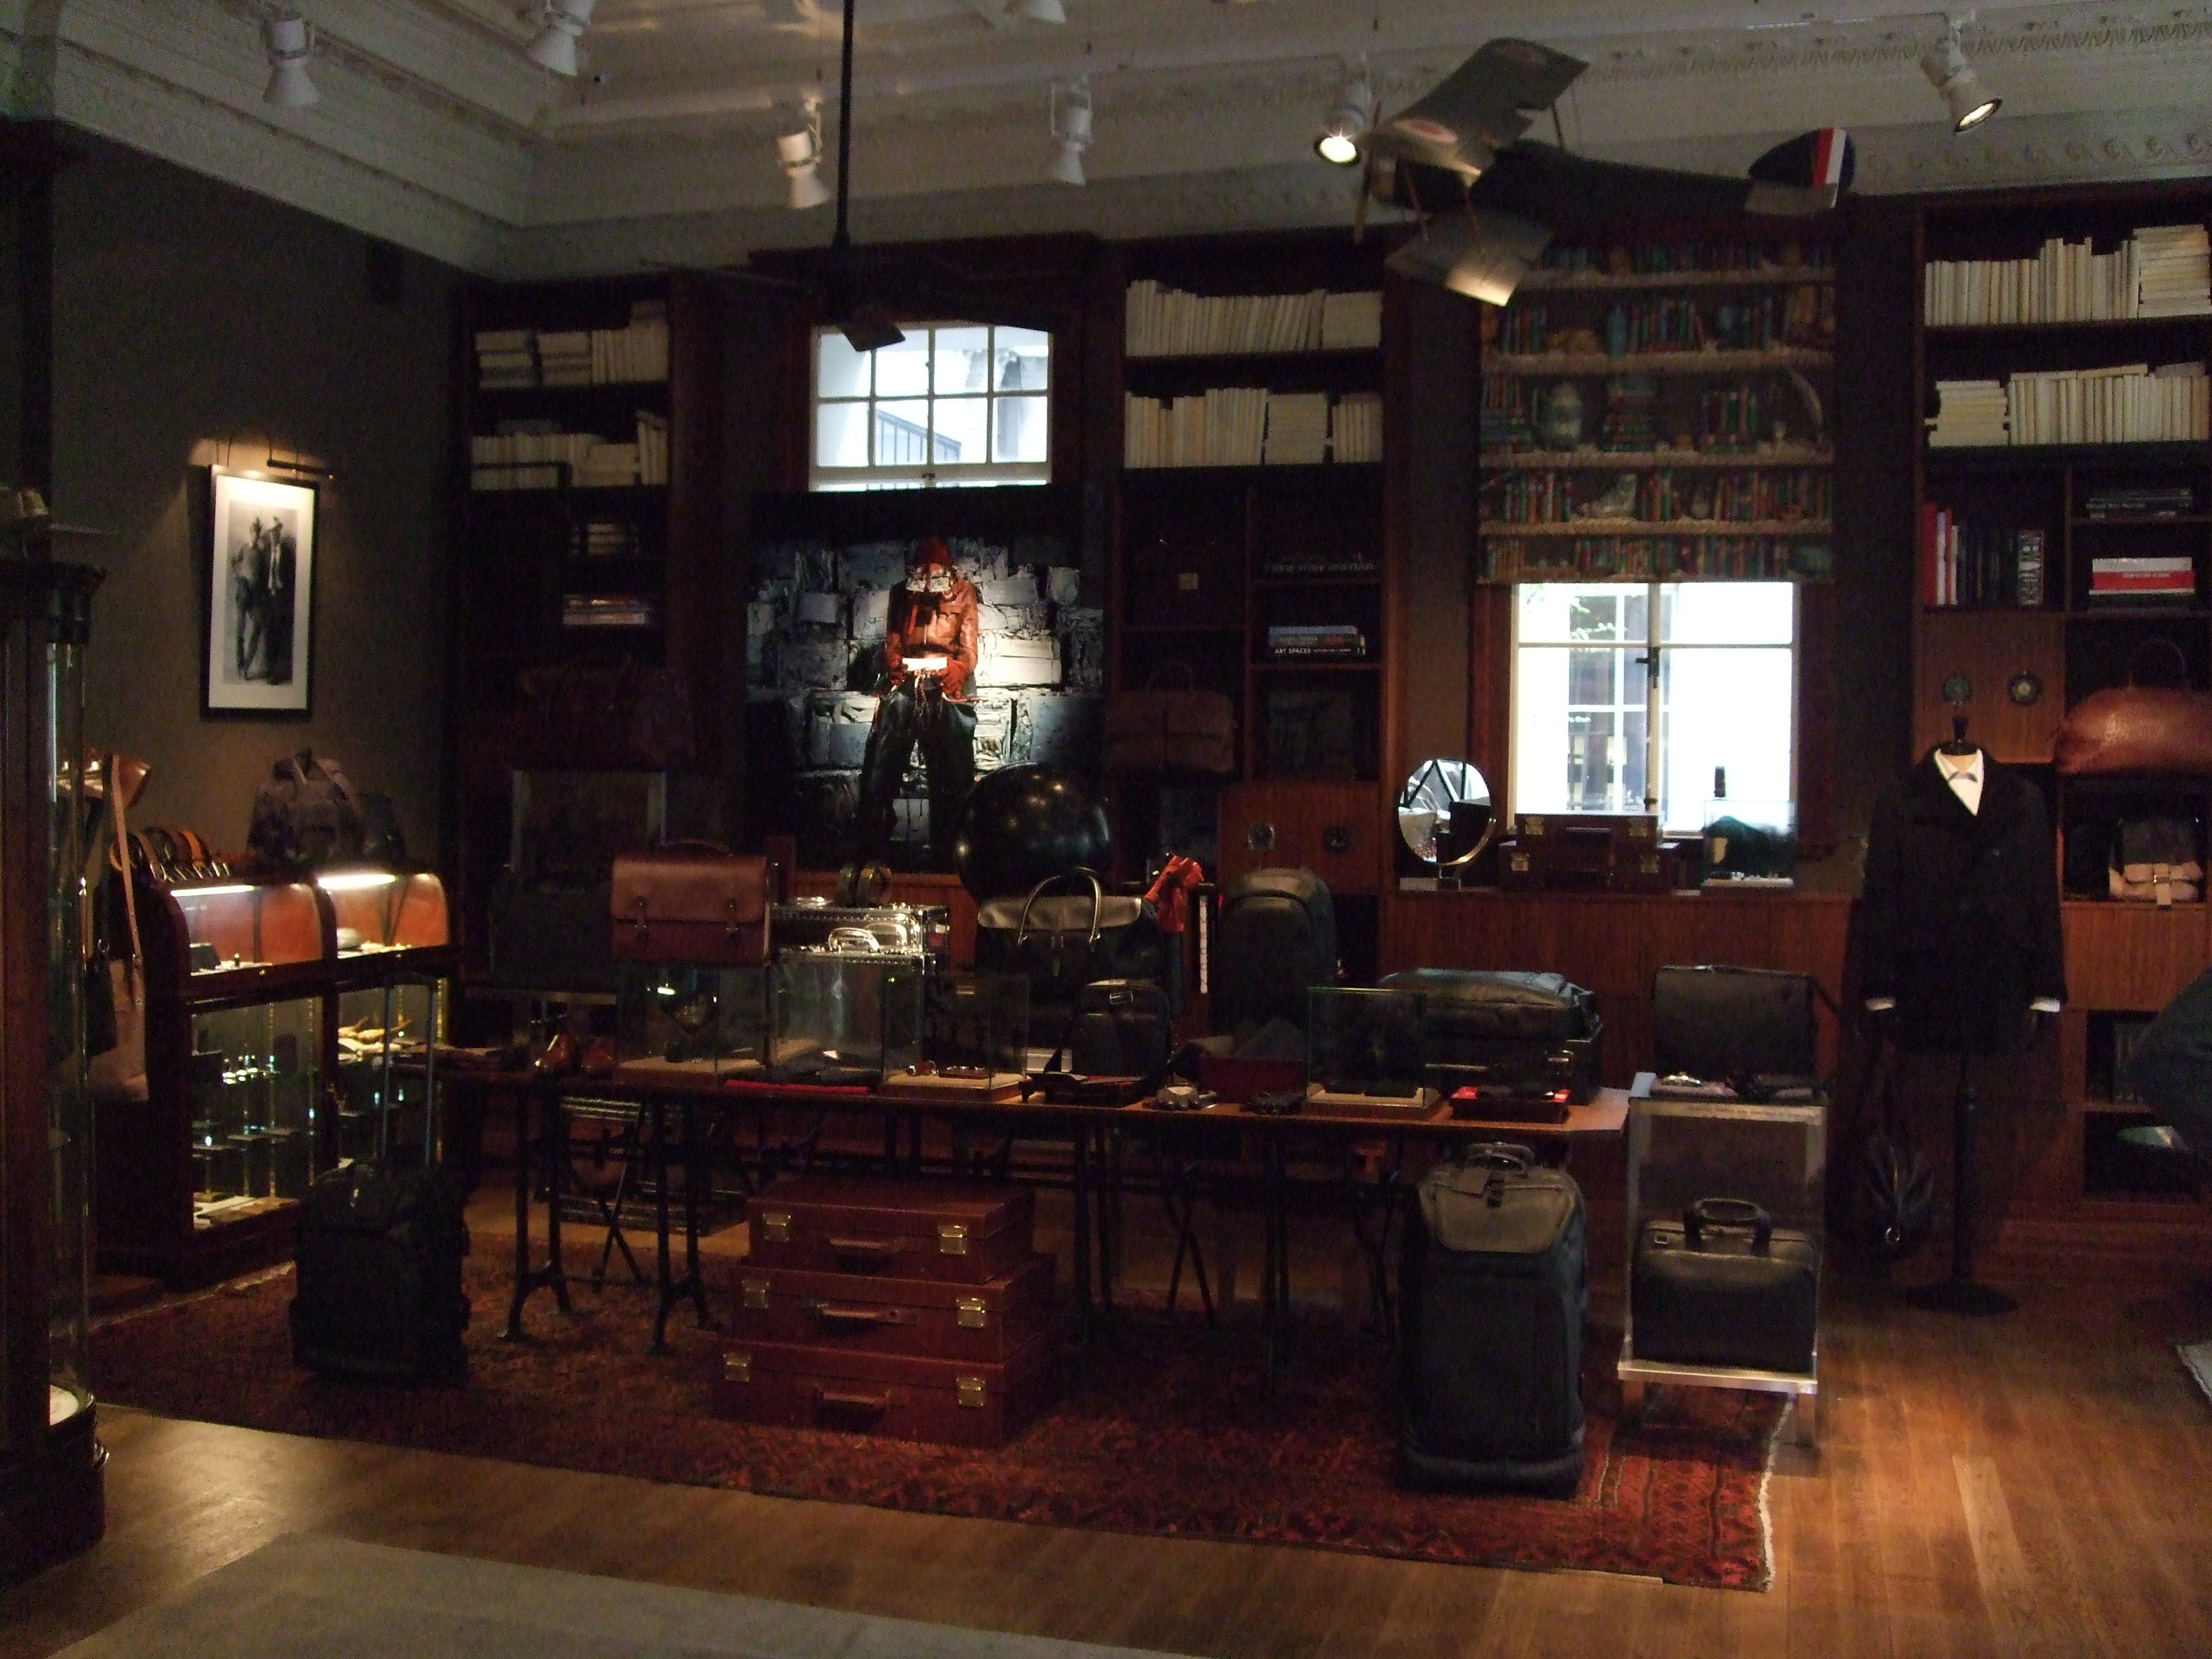 The Home of Alfred Dunhill Shanghai - Leaving behind - Living ahead